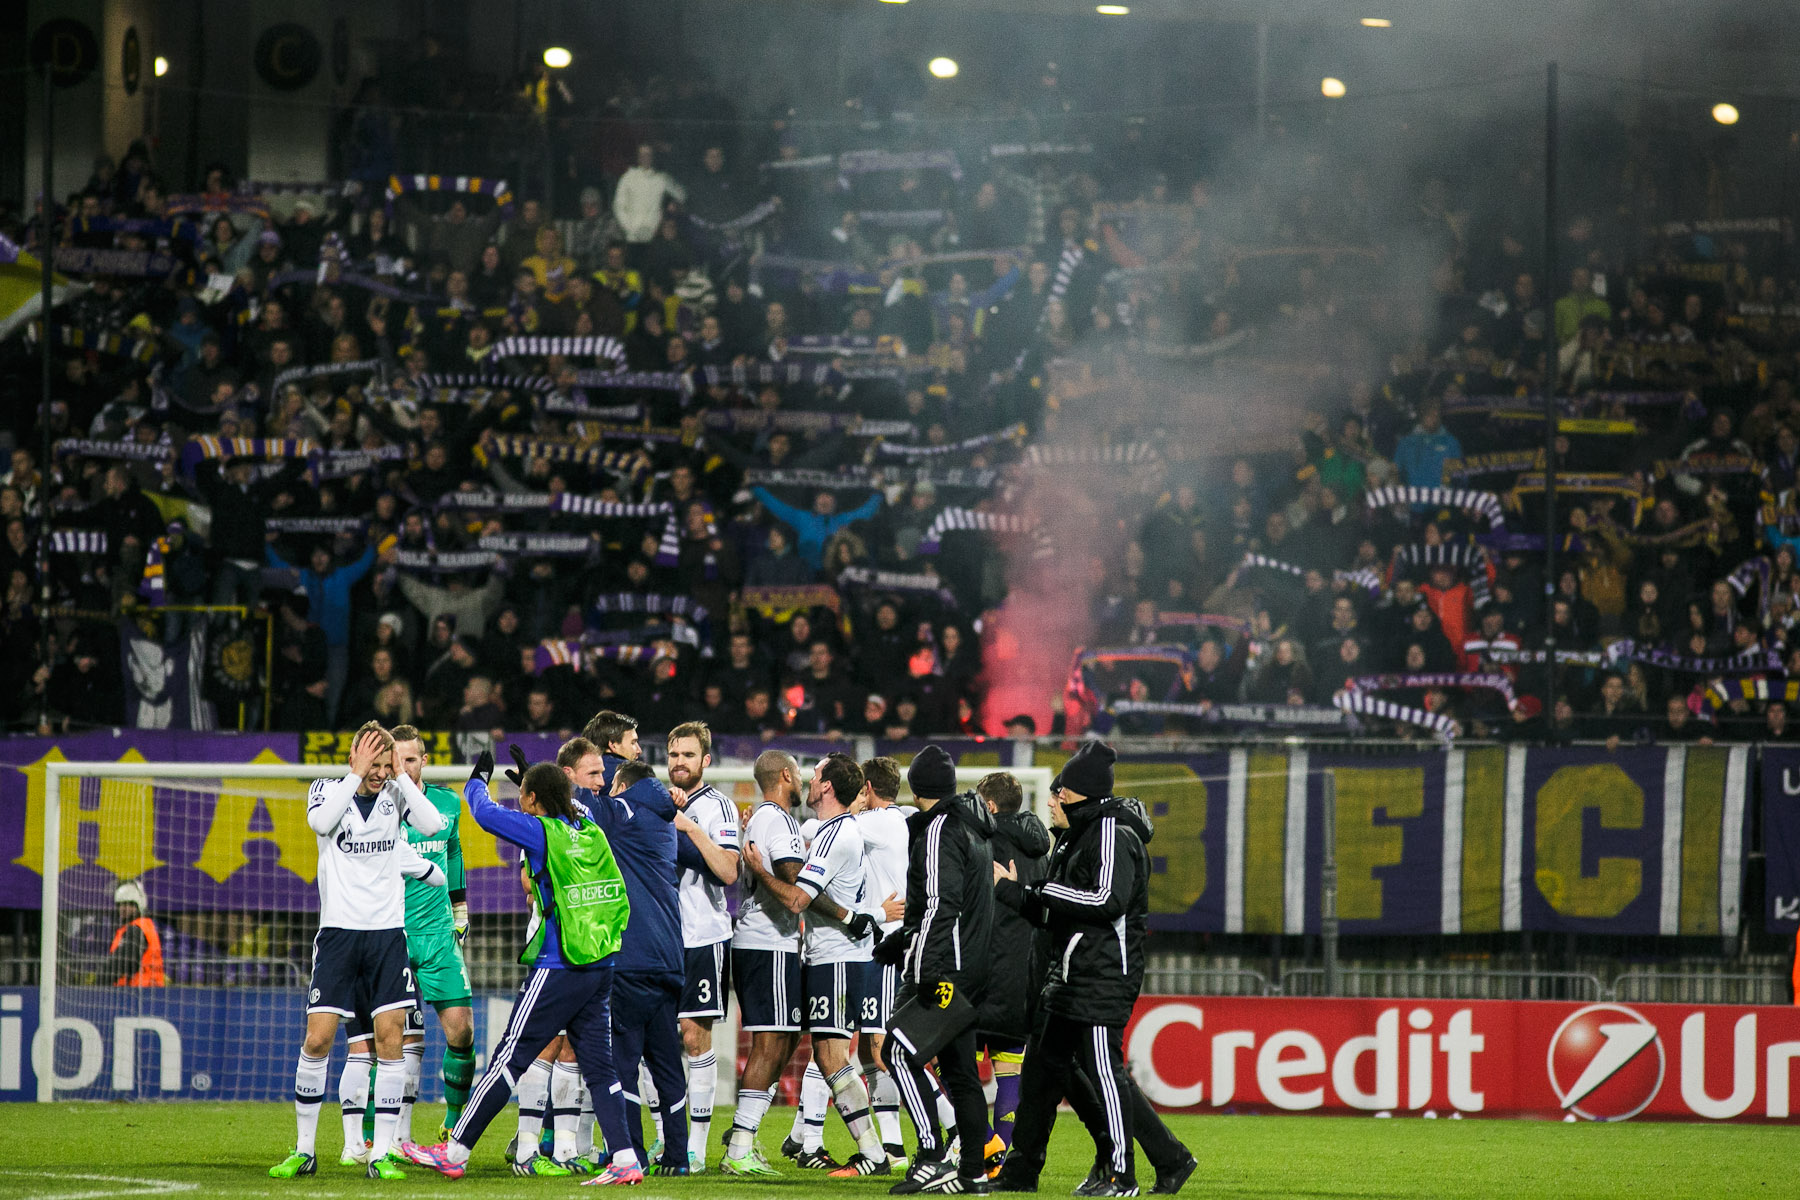 FC Schalke 04 celebrate victory against NK MAribor after the UEFA Champions League Group G match on December 10 in Maribor, Slovenia.